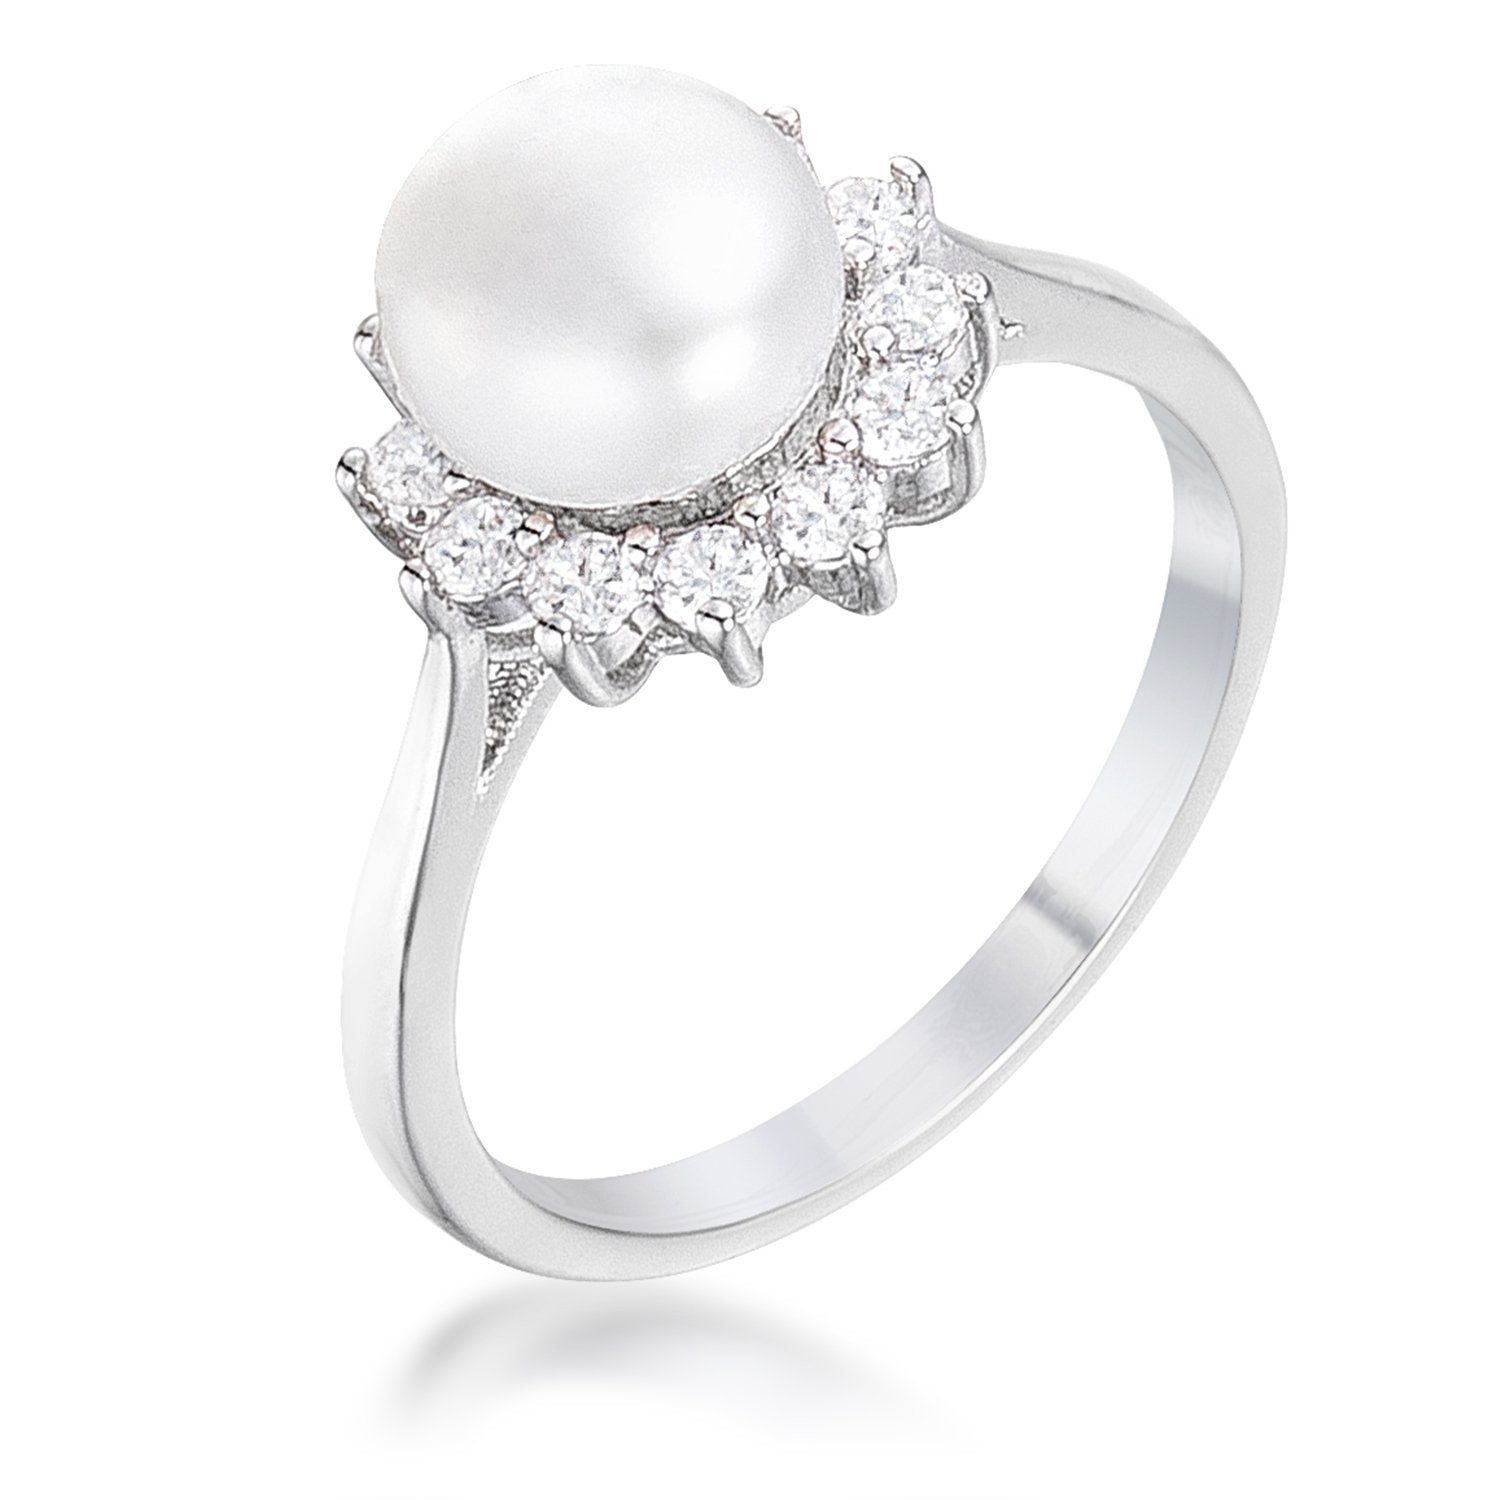 Ariana's Pearl and Halo Ring